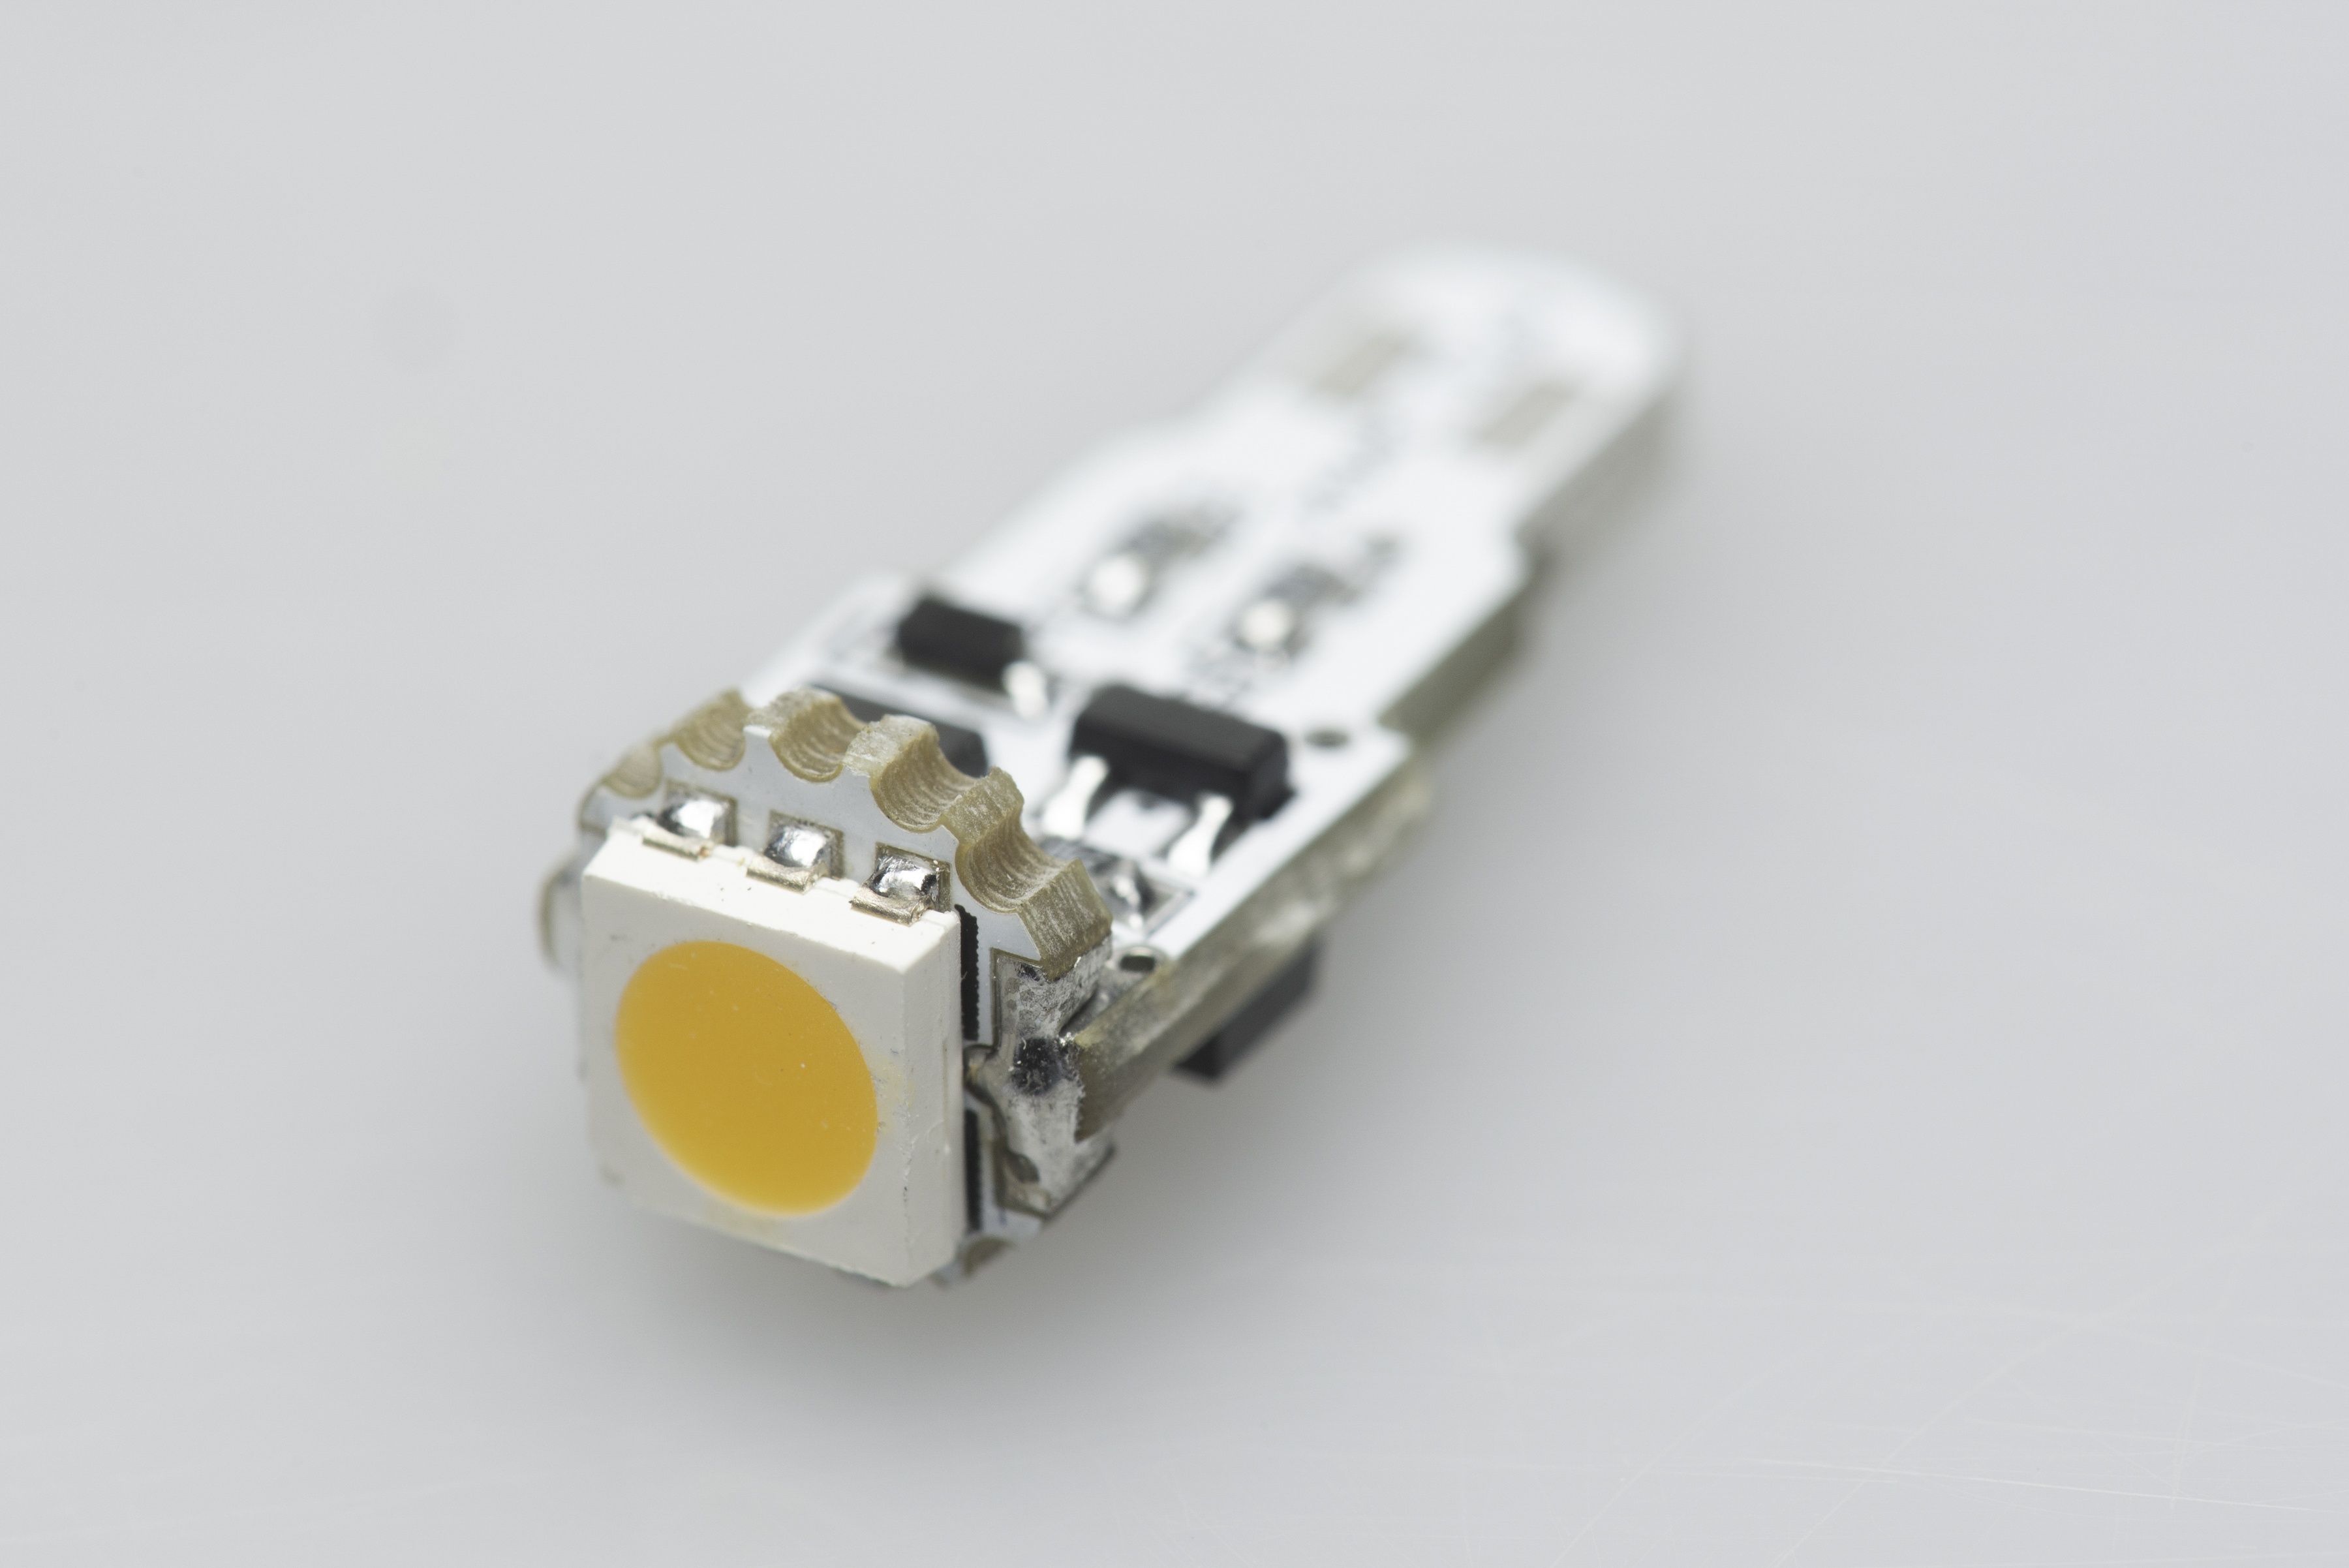 Lighting products - Crypt-Lite™ - LED light replacement_ color white - YG-MWp61_w